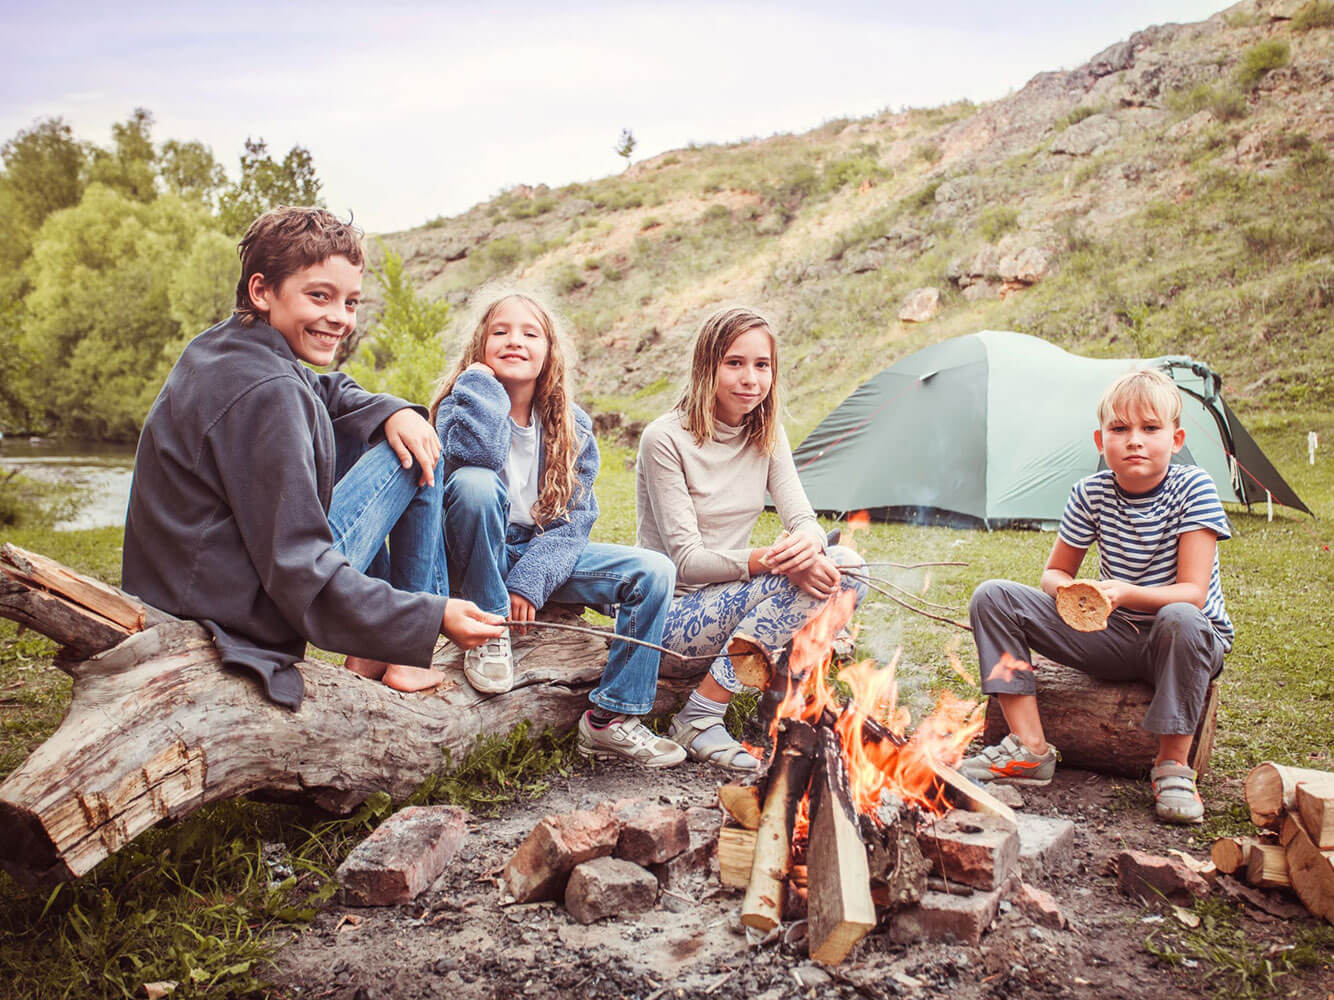 Kinder im Familiencamp am Lagerfeuer